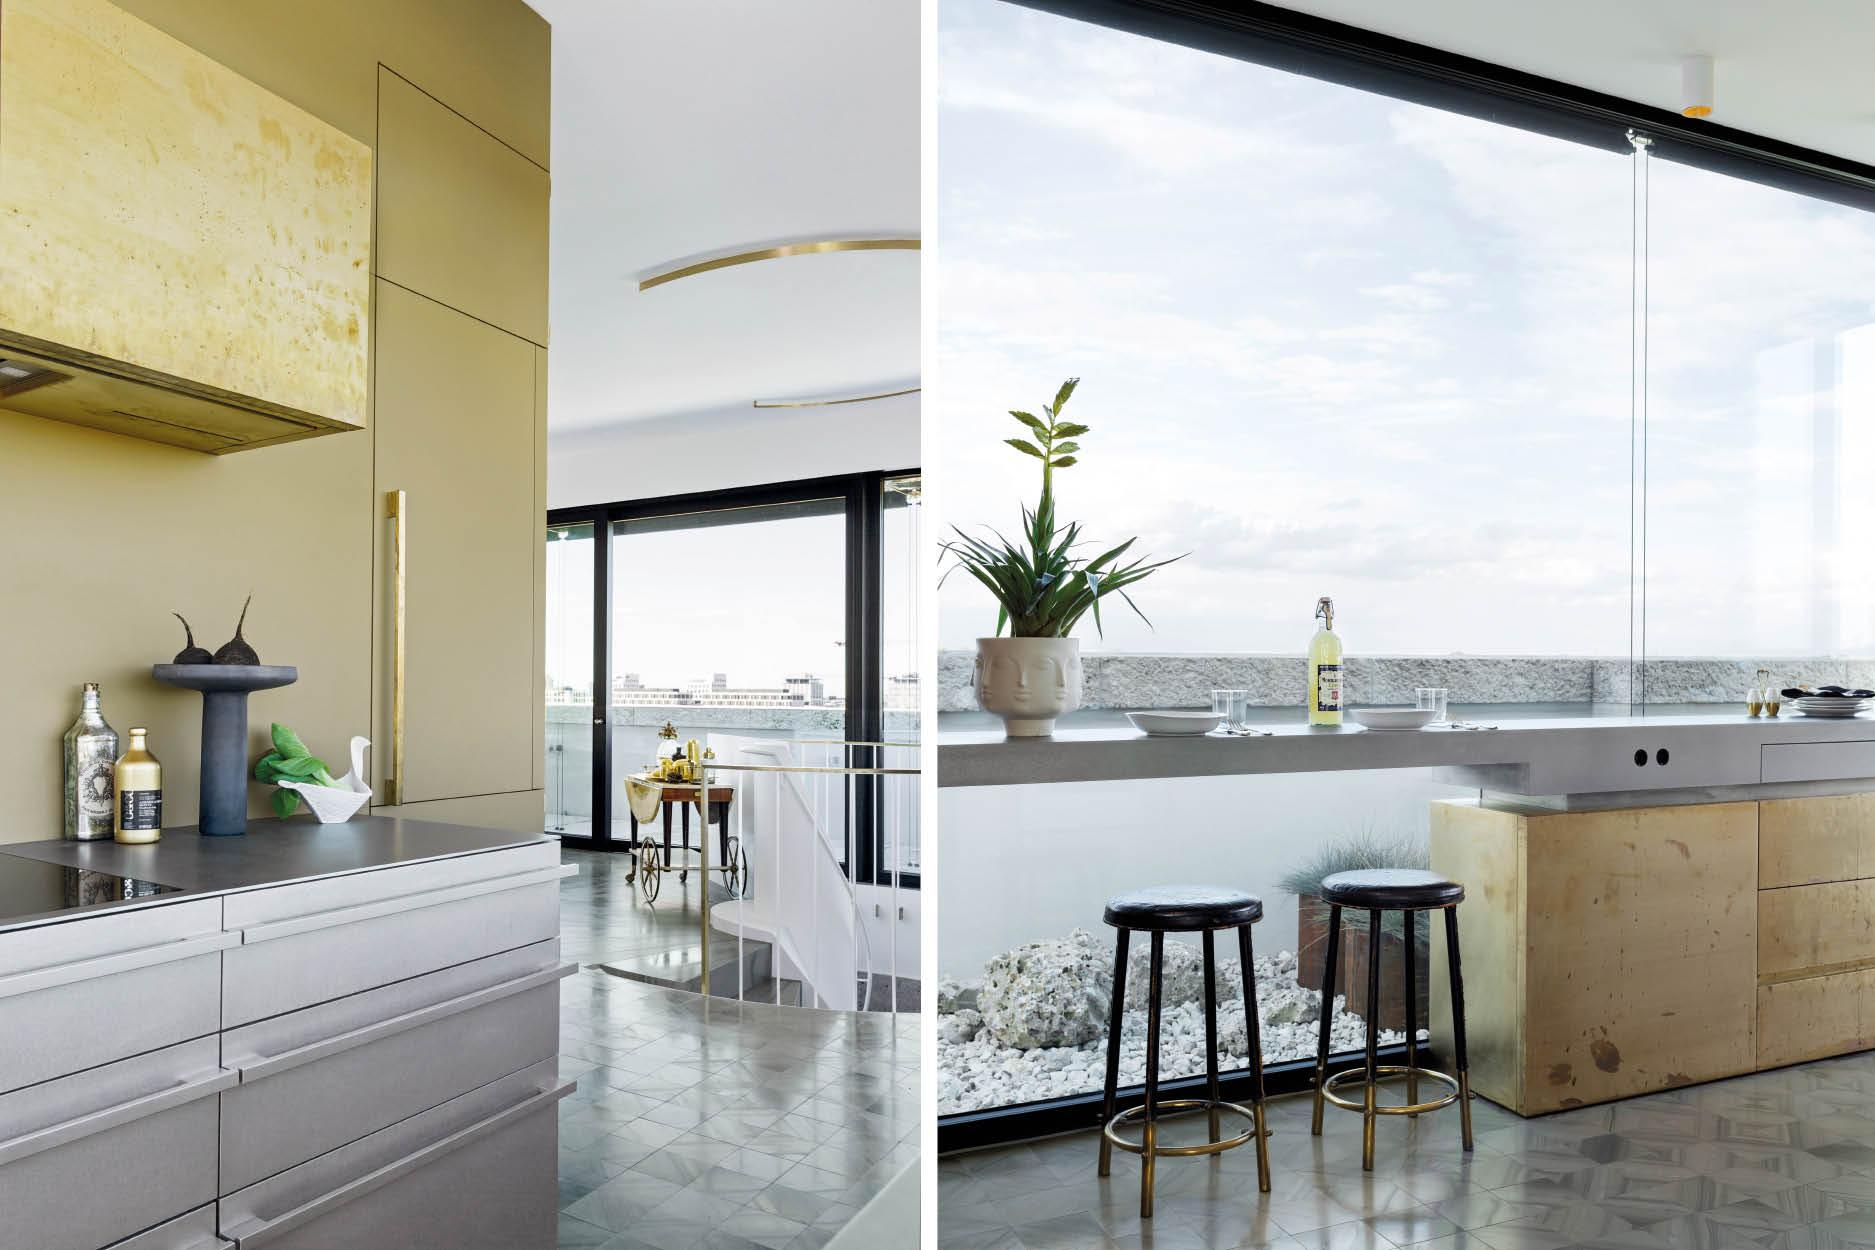 The kitchen's blend of brushed steal and untreated brass reflects the room's natural lighting. Breakfast can be enjoyed with unobstructed views of Munich